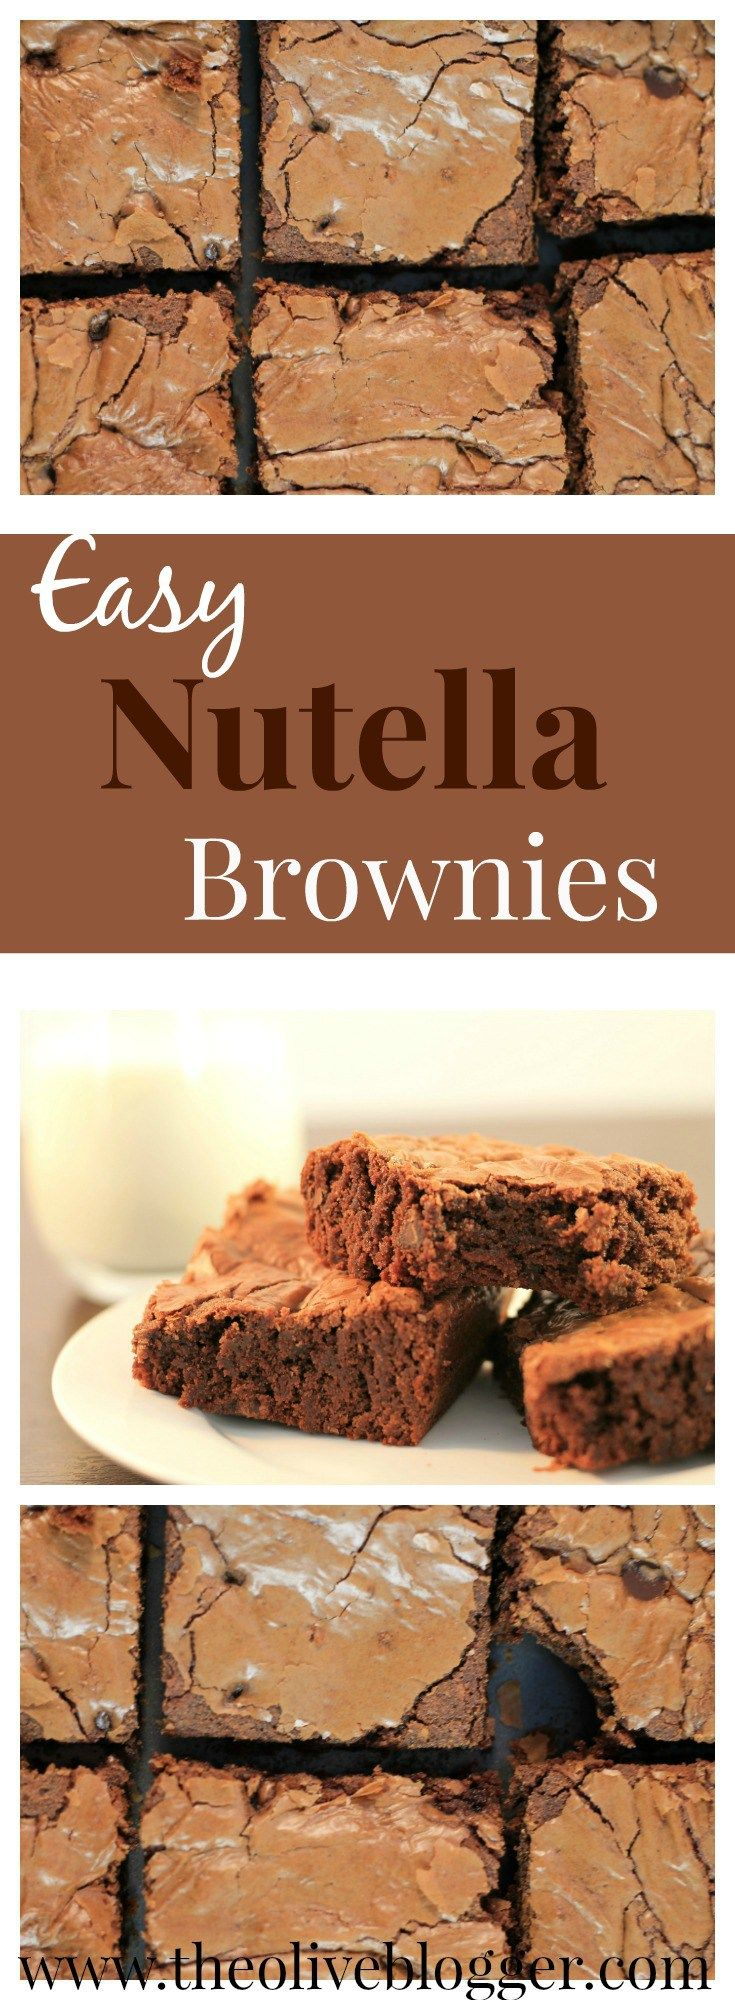 Easy Nutella Brownies - The BEST brownie you will ever make! Perfectly chewy and full of Nutella flavor! Check out this recipe and more at TheOliveBlogger.com